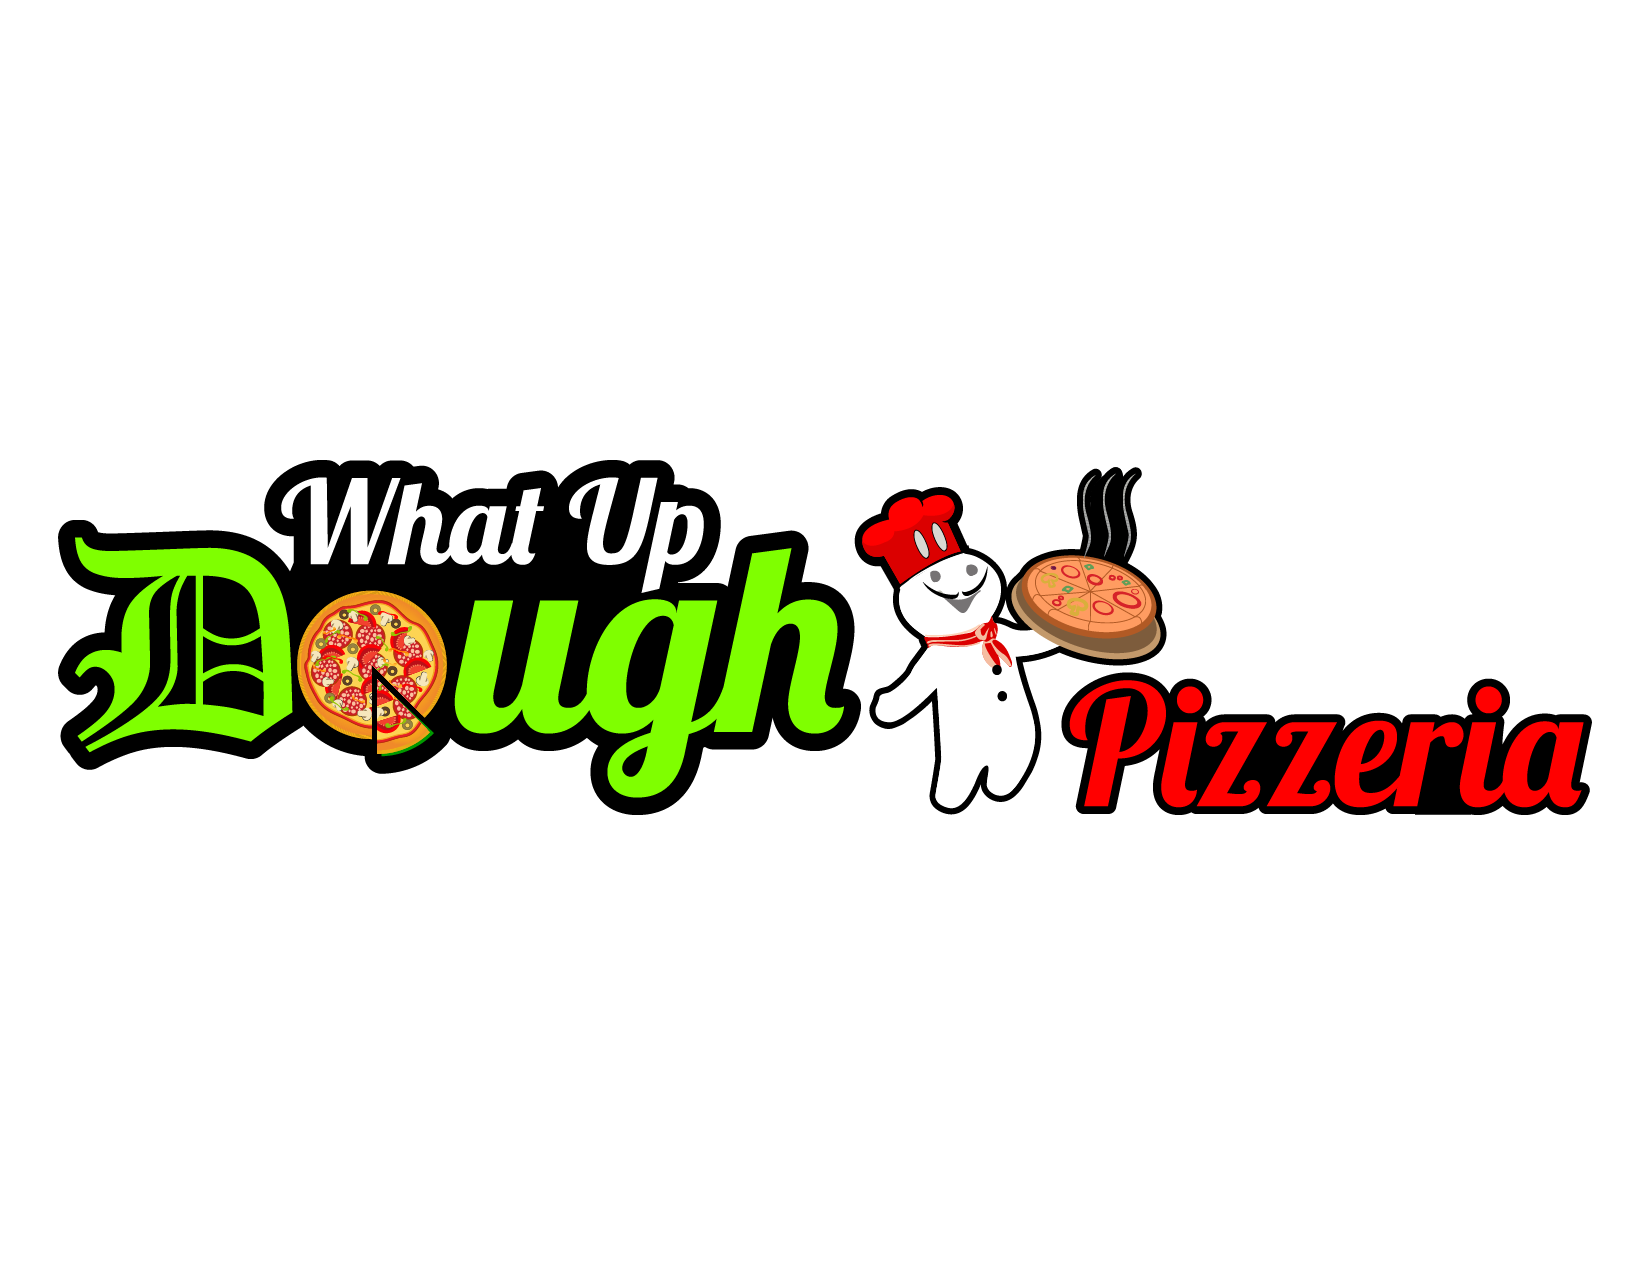 WHAT UP DOUGH PIZZERIA